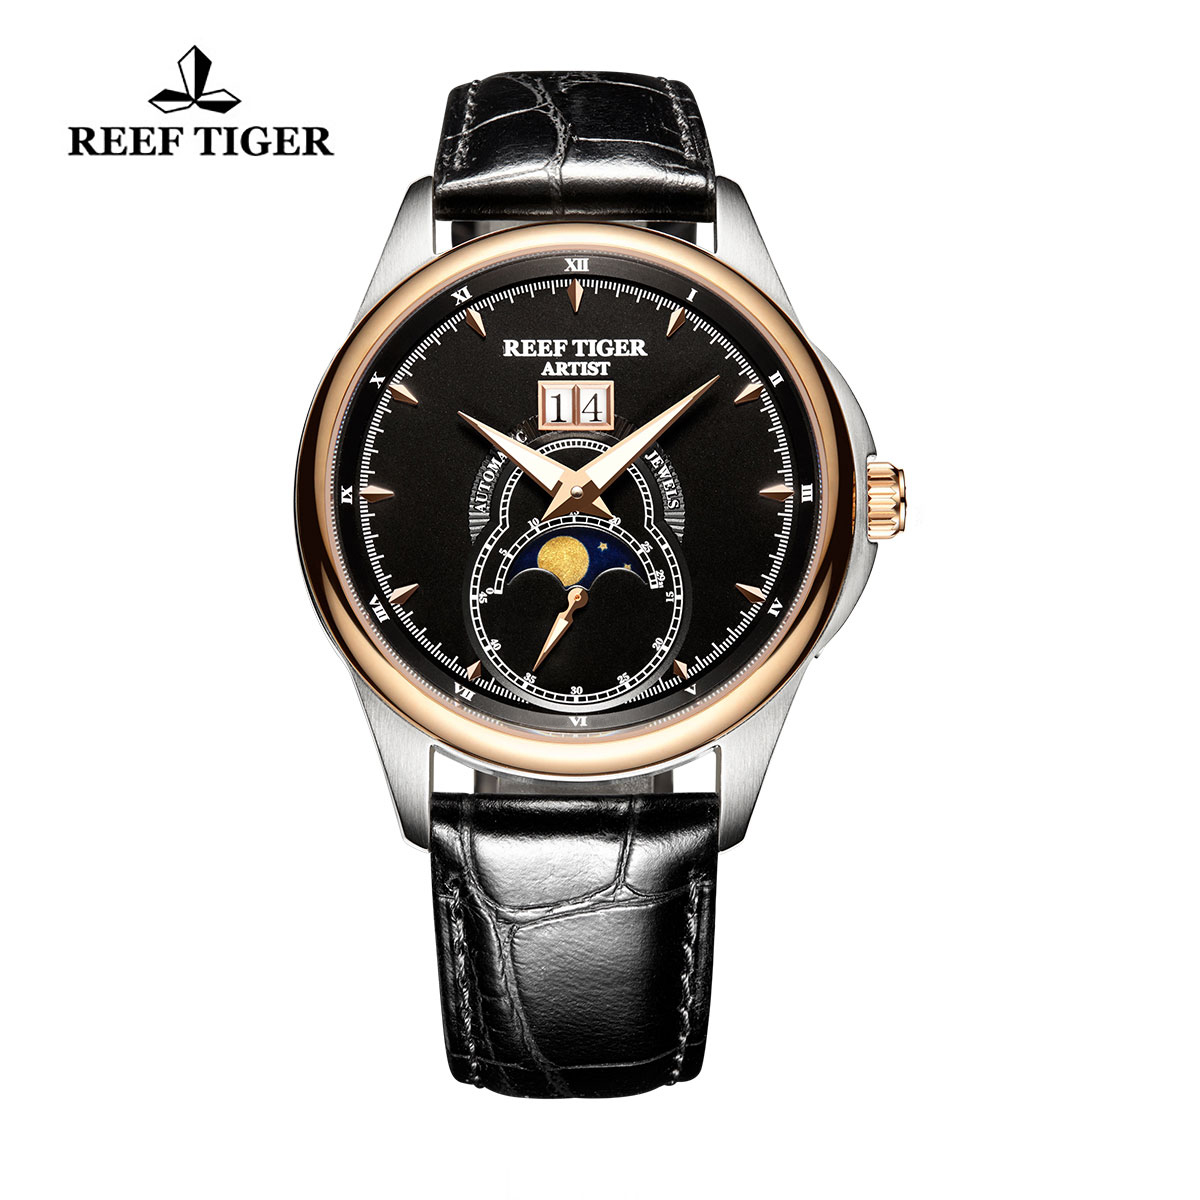 Reef Tiger Knighthood Casual Watch with Dual Calendar Black Dial Calfskin Leather RGA1928-PBB